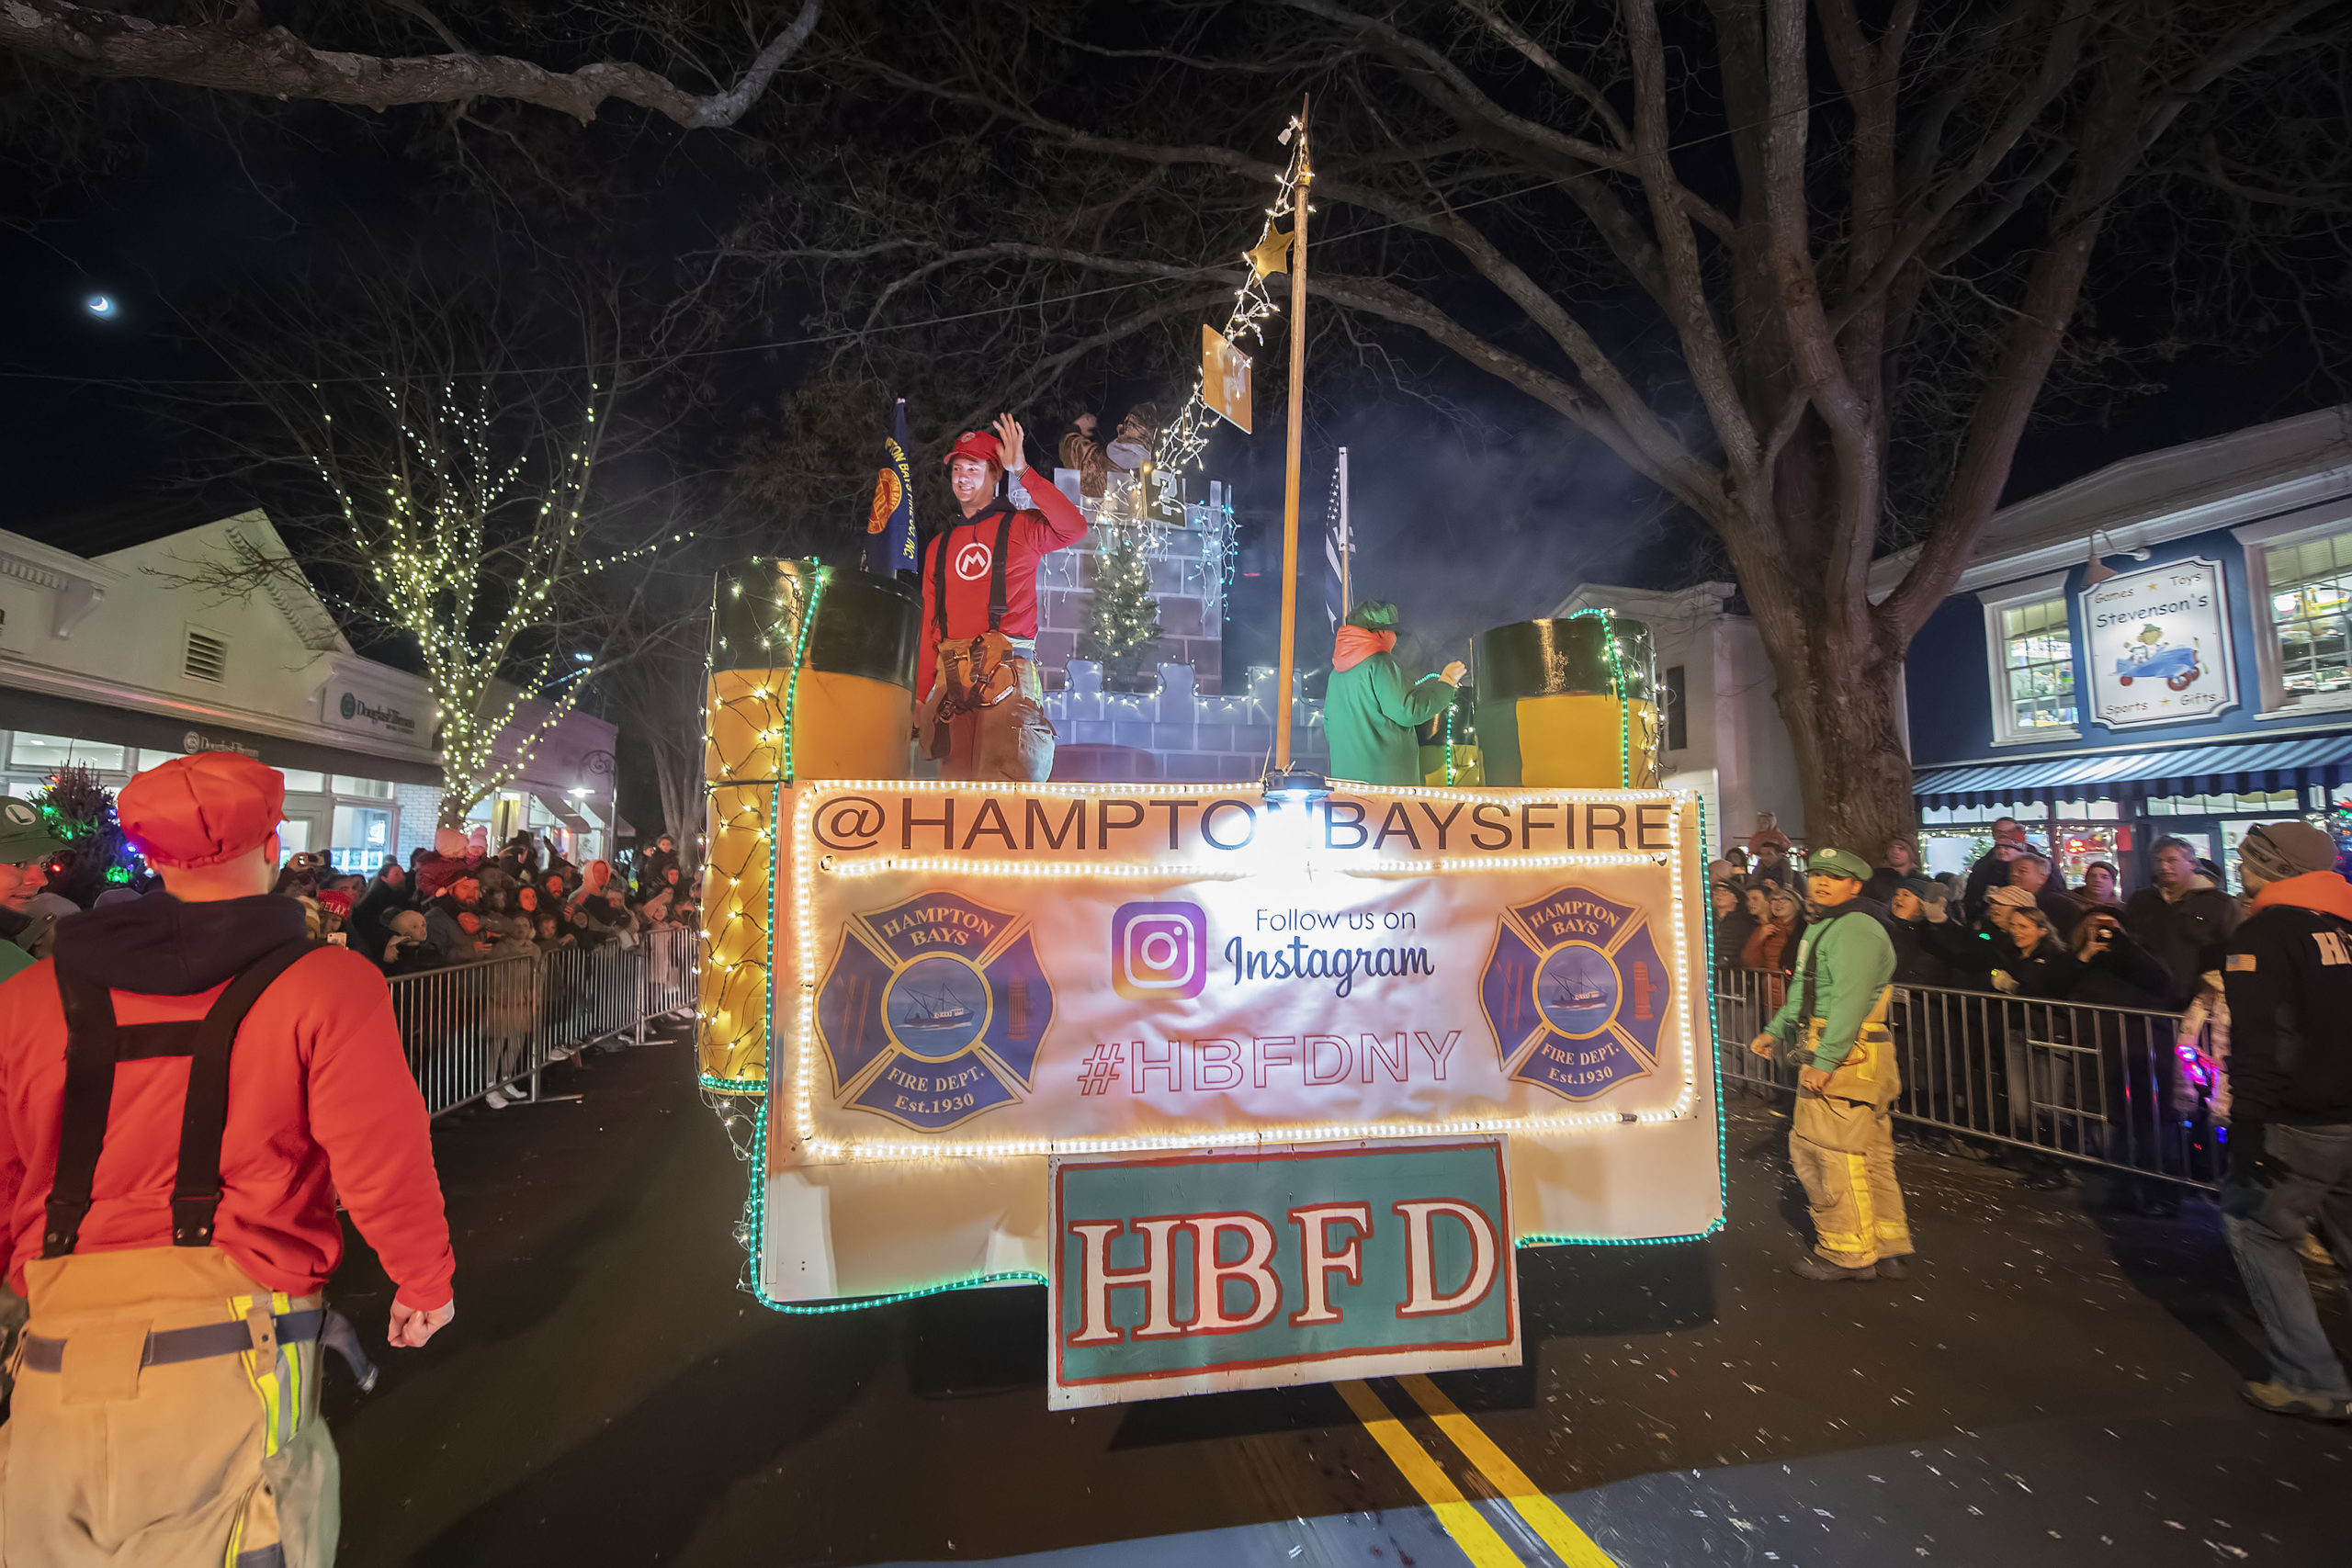 The Hampton Bays Fire Department used a Mario Brothers theme during the 2019